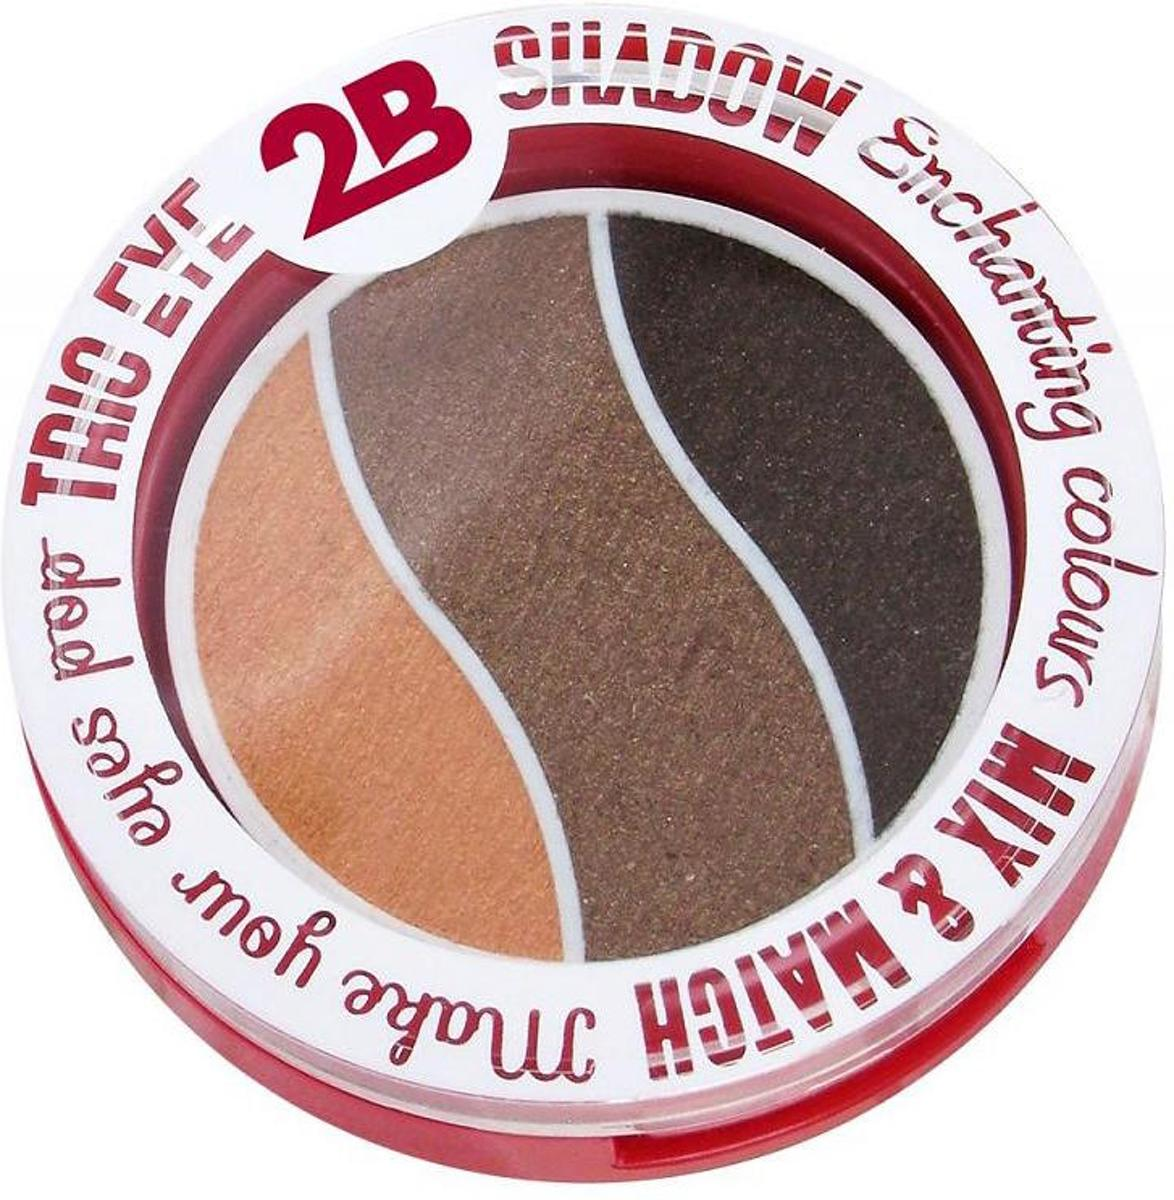 2B-Trio eye shadow Enchanting colours 02 orange/brown